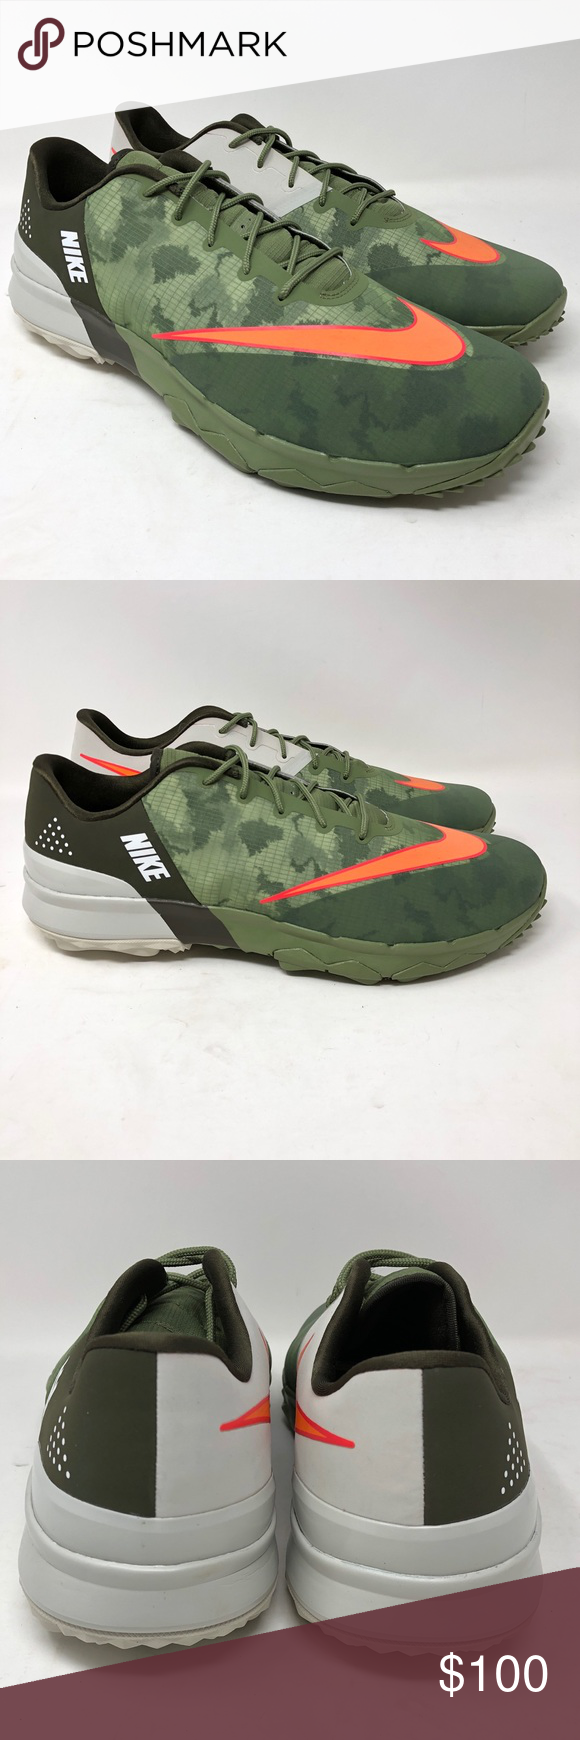 6427d173d0c31 Calzado Nike · Camuflaje · Zapatillas Deportivas · Naranja · Nike FI Flex  Spikeless Golf Shoe Green Camo Cargo Nike FI Flex Spikeless Golf Shoe Size